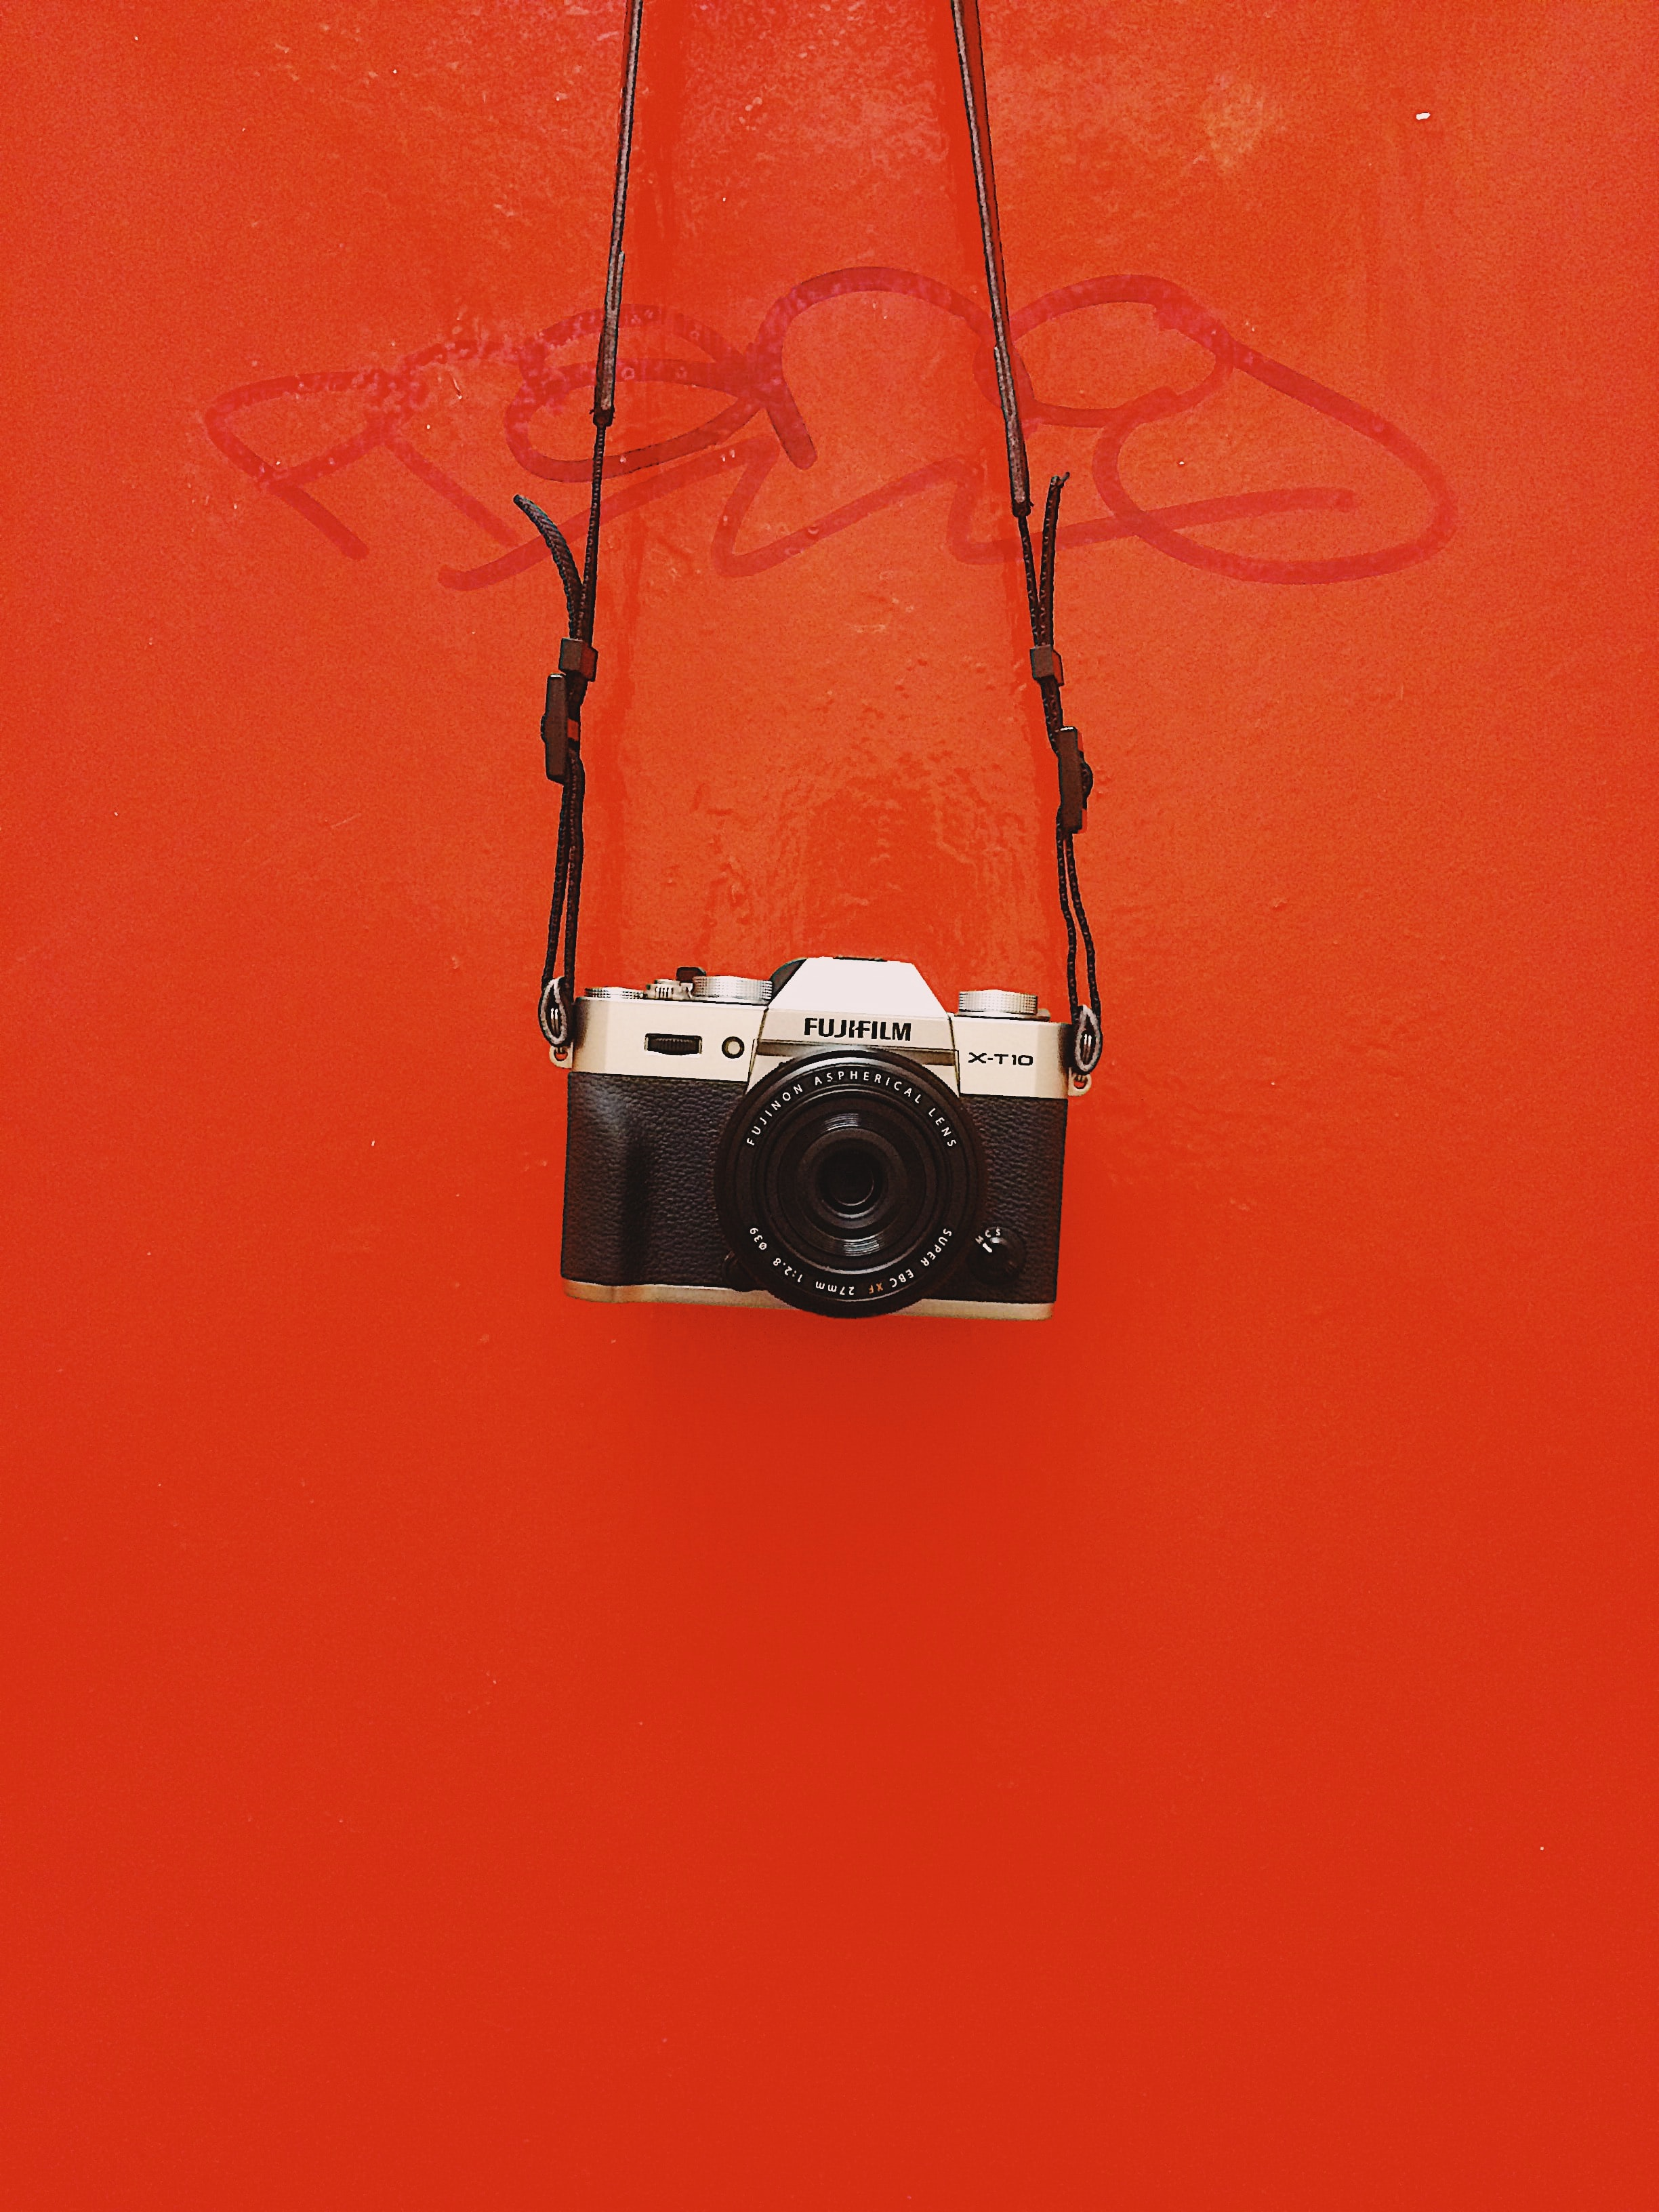 Black Fujifilm camera and straps in front of red surface with graffiti